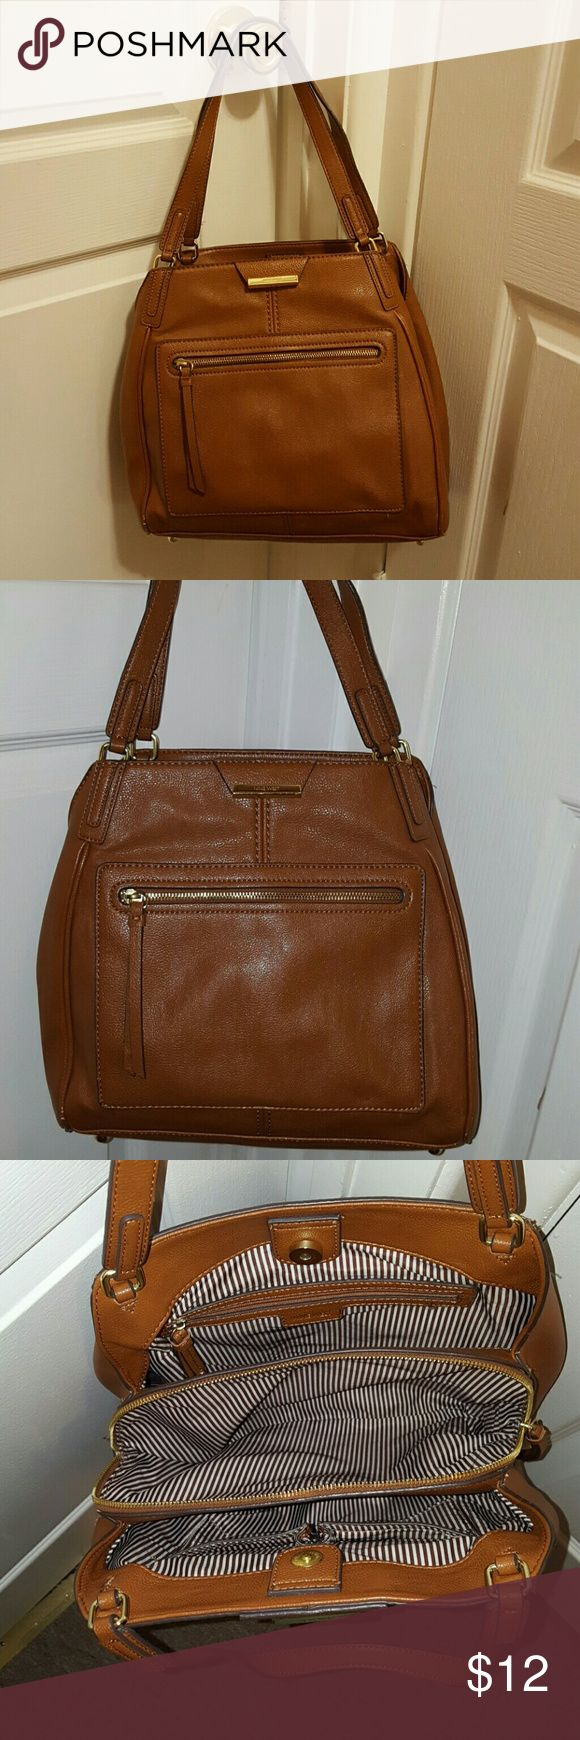 Nine West bag Nine West bag. Gently used. This is a great bag with alot of room..color is camel. Bags Shoulder Bags